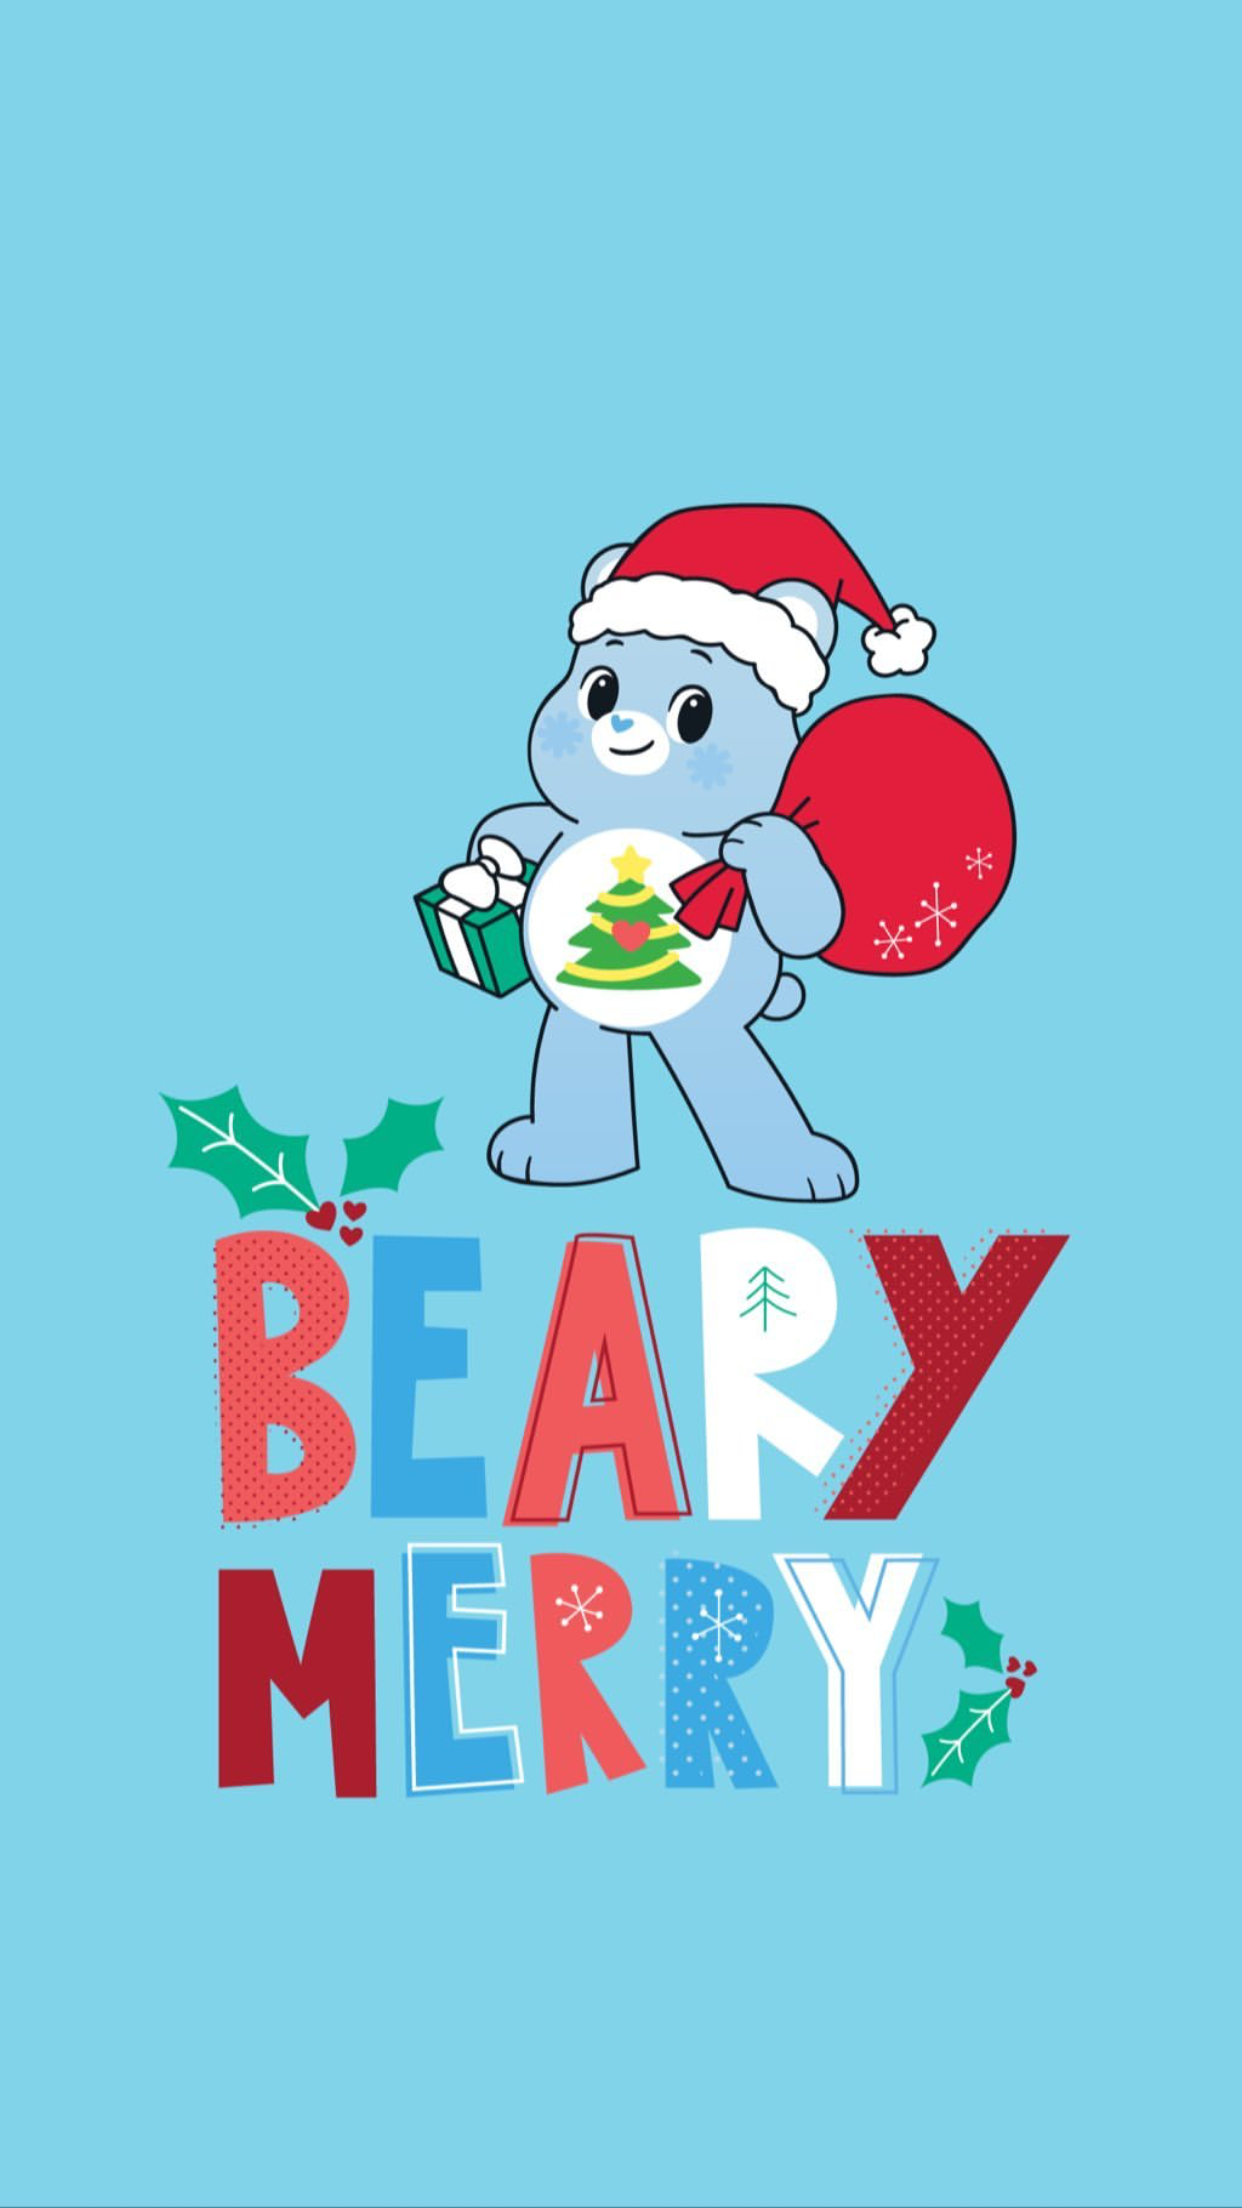 Pin by Moon Child on Care Bears ️ Merry, Care bears